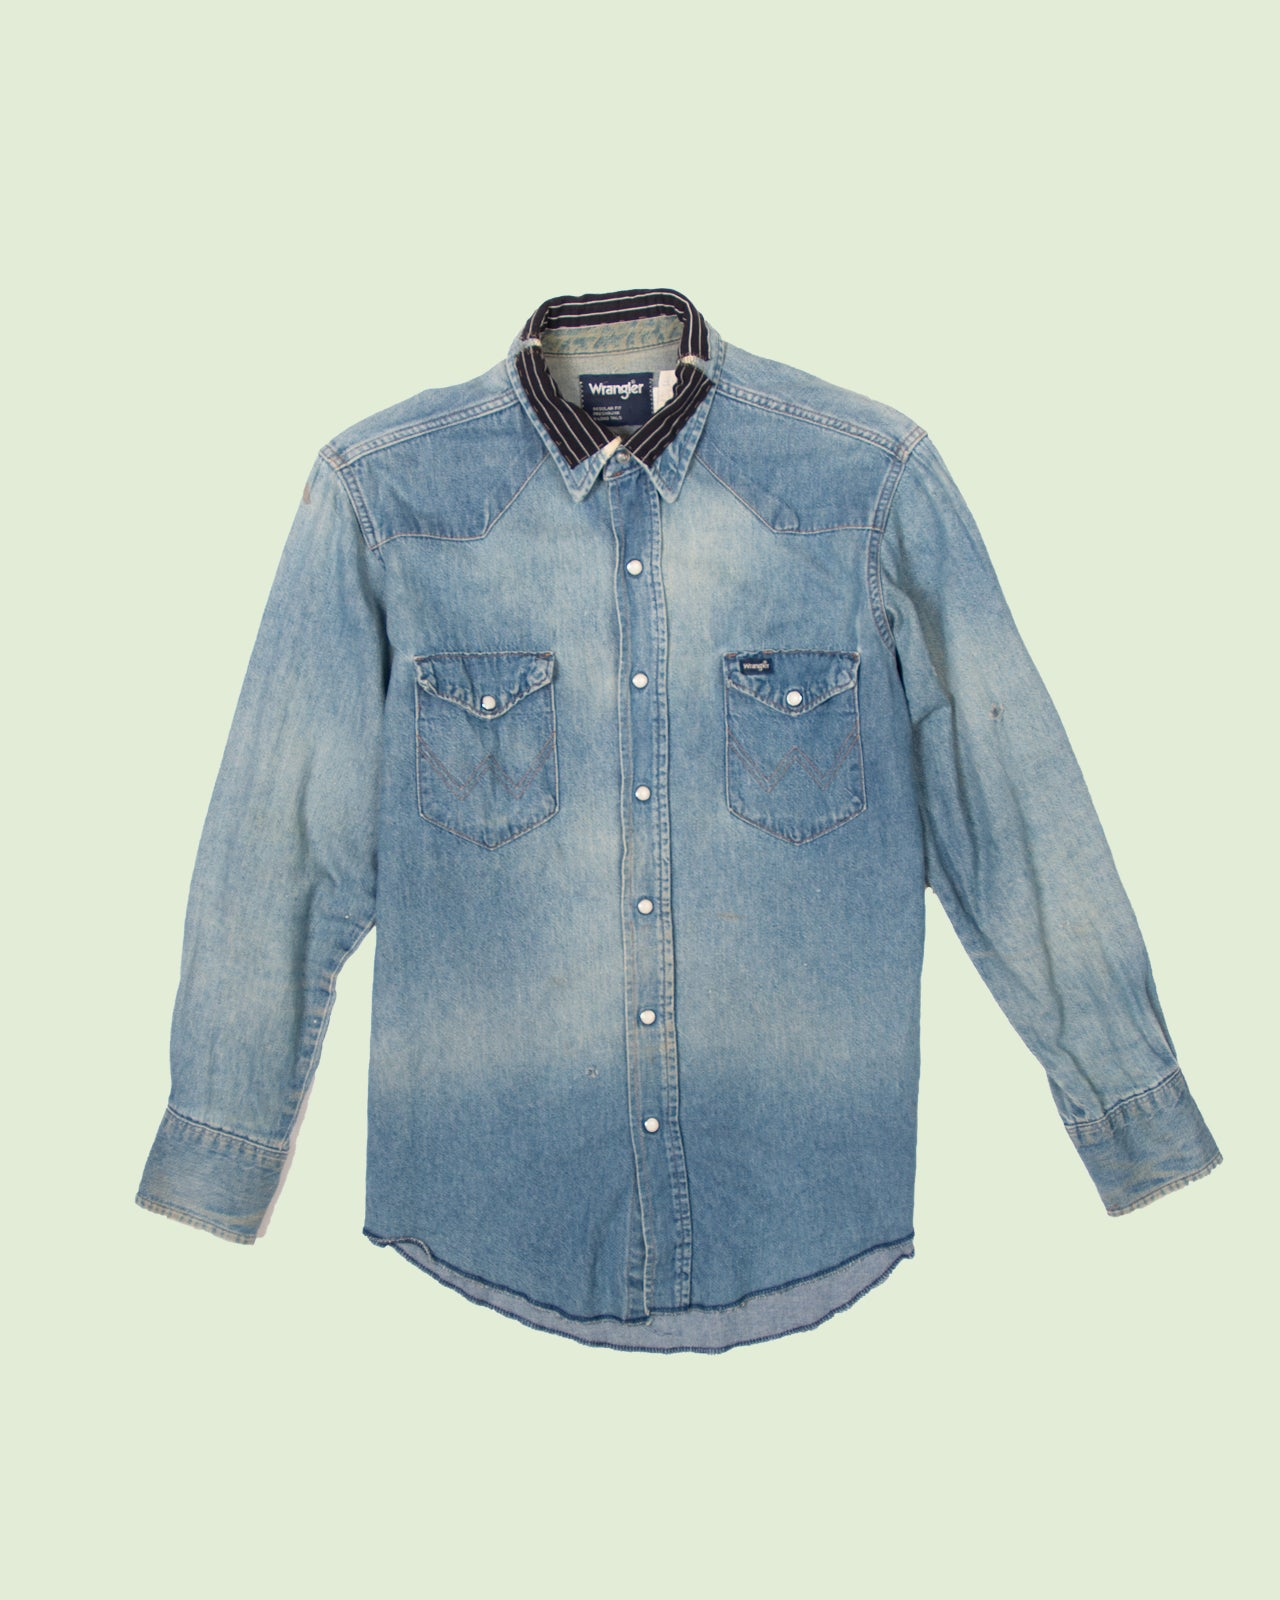 Wrangler Denim Patched No. 2 (M/L)